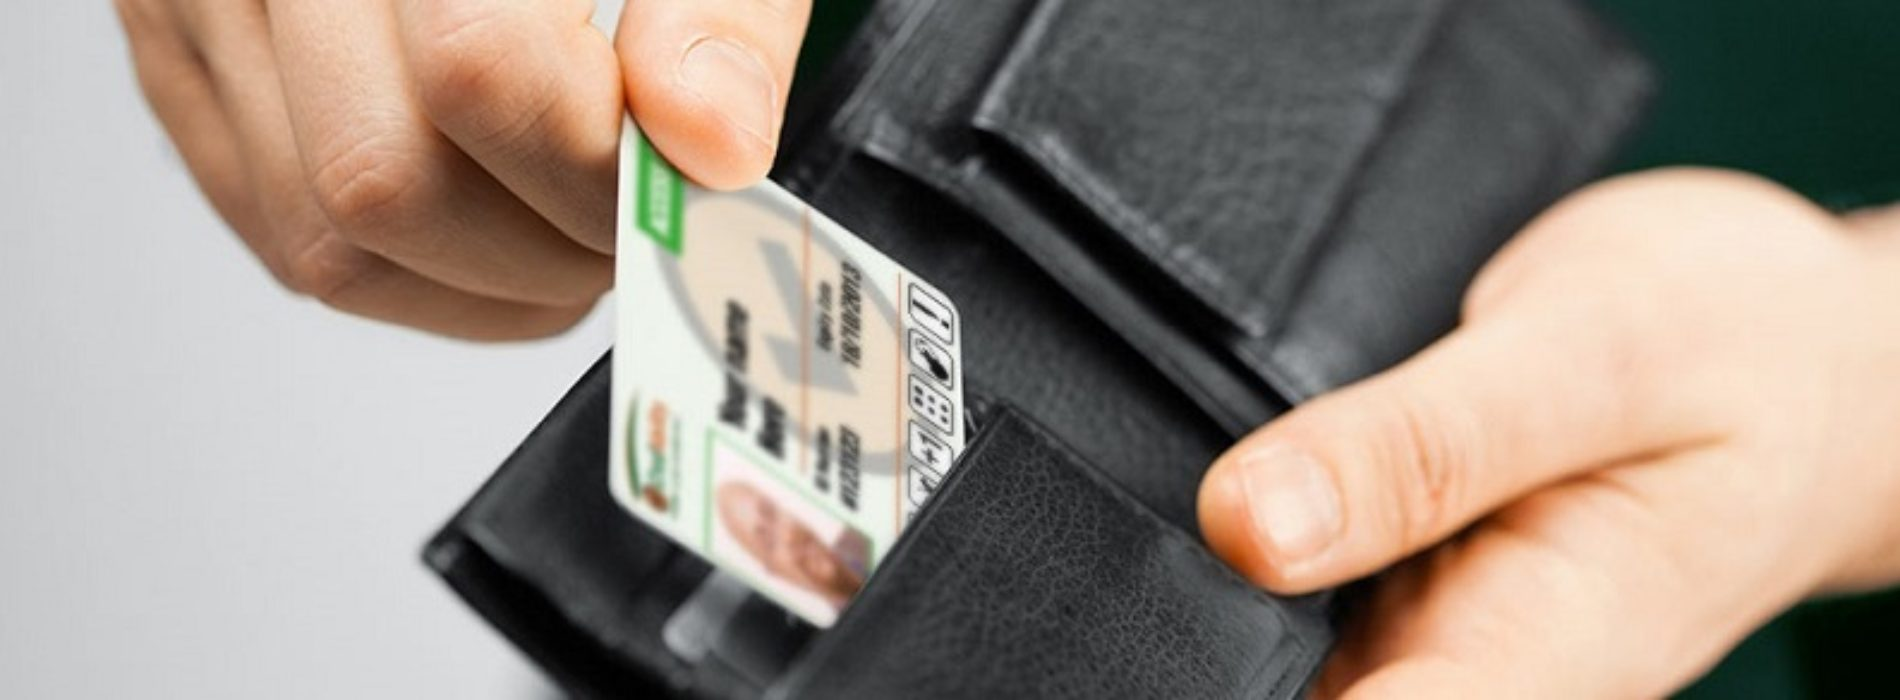 How the Access Card scheme can help you convey your needs